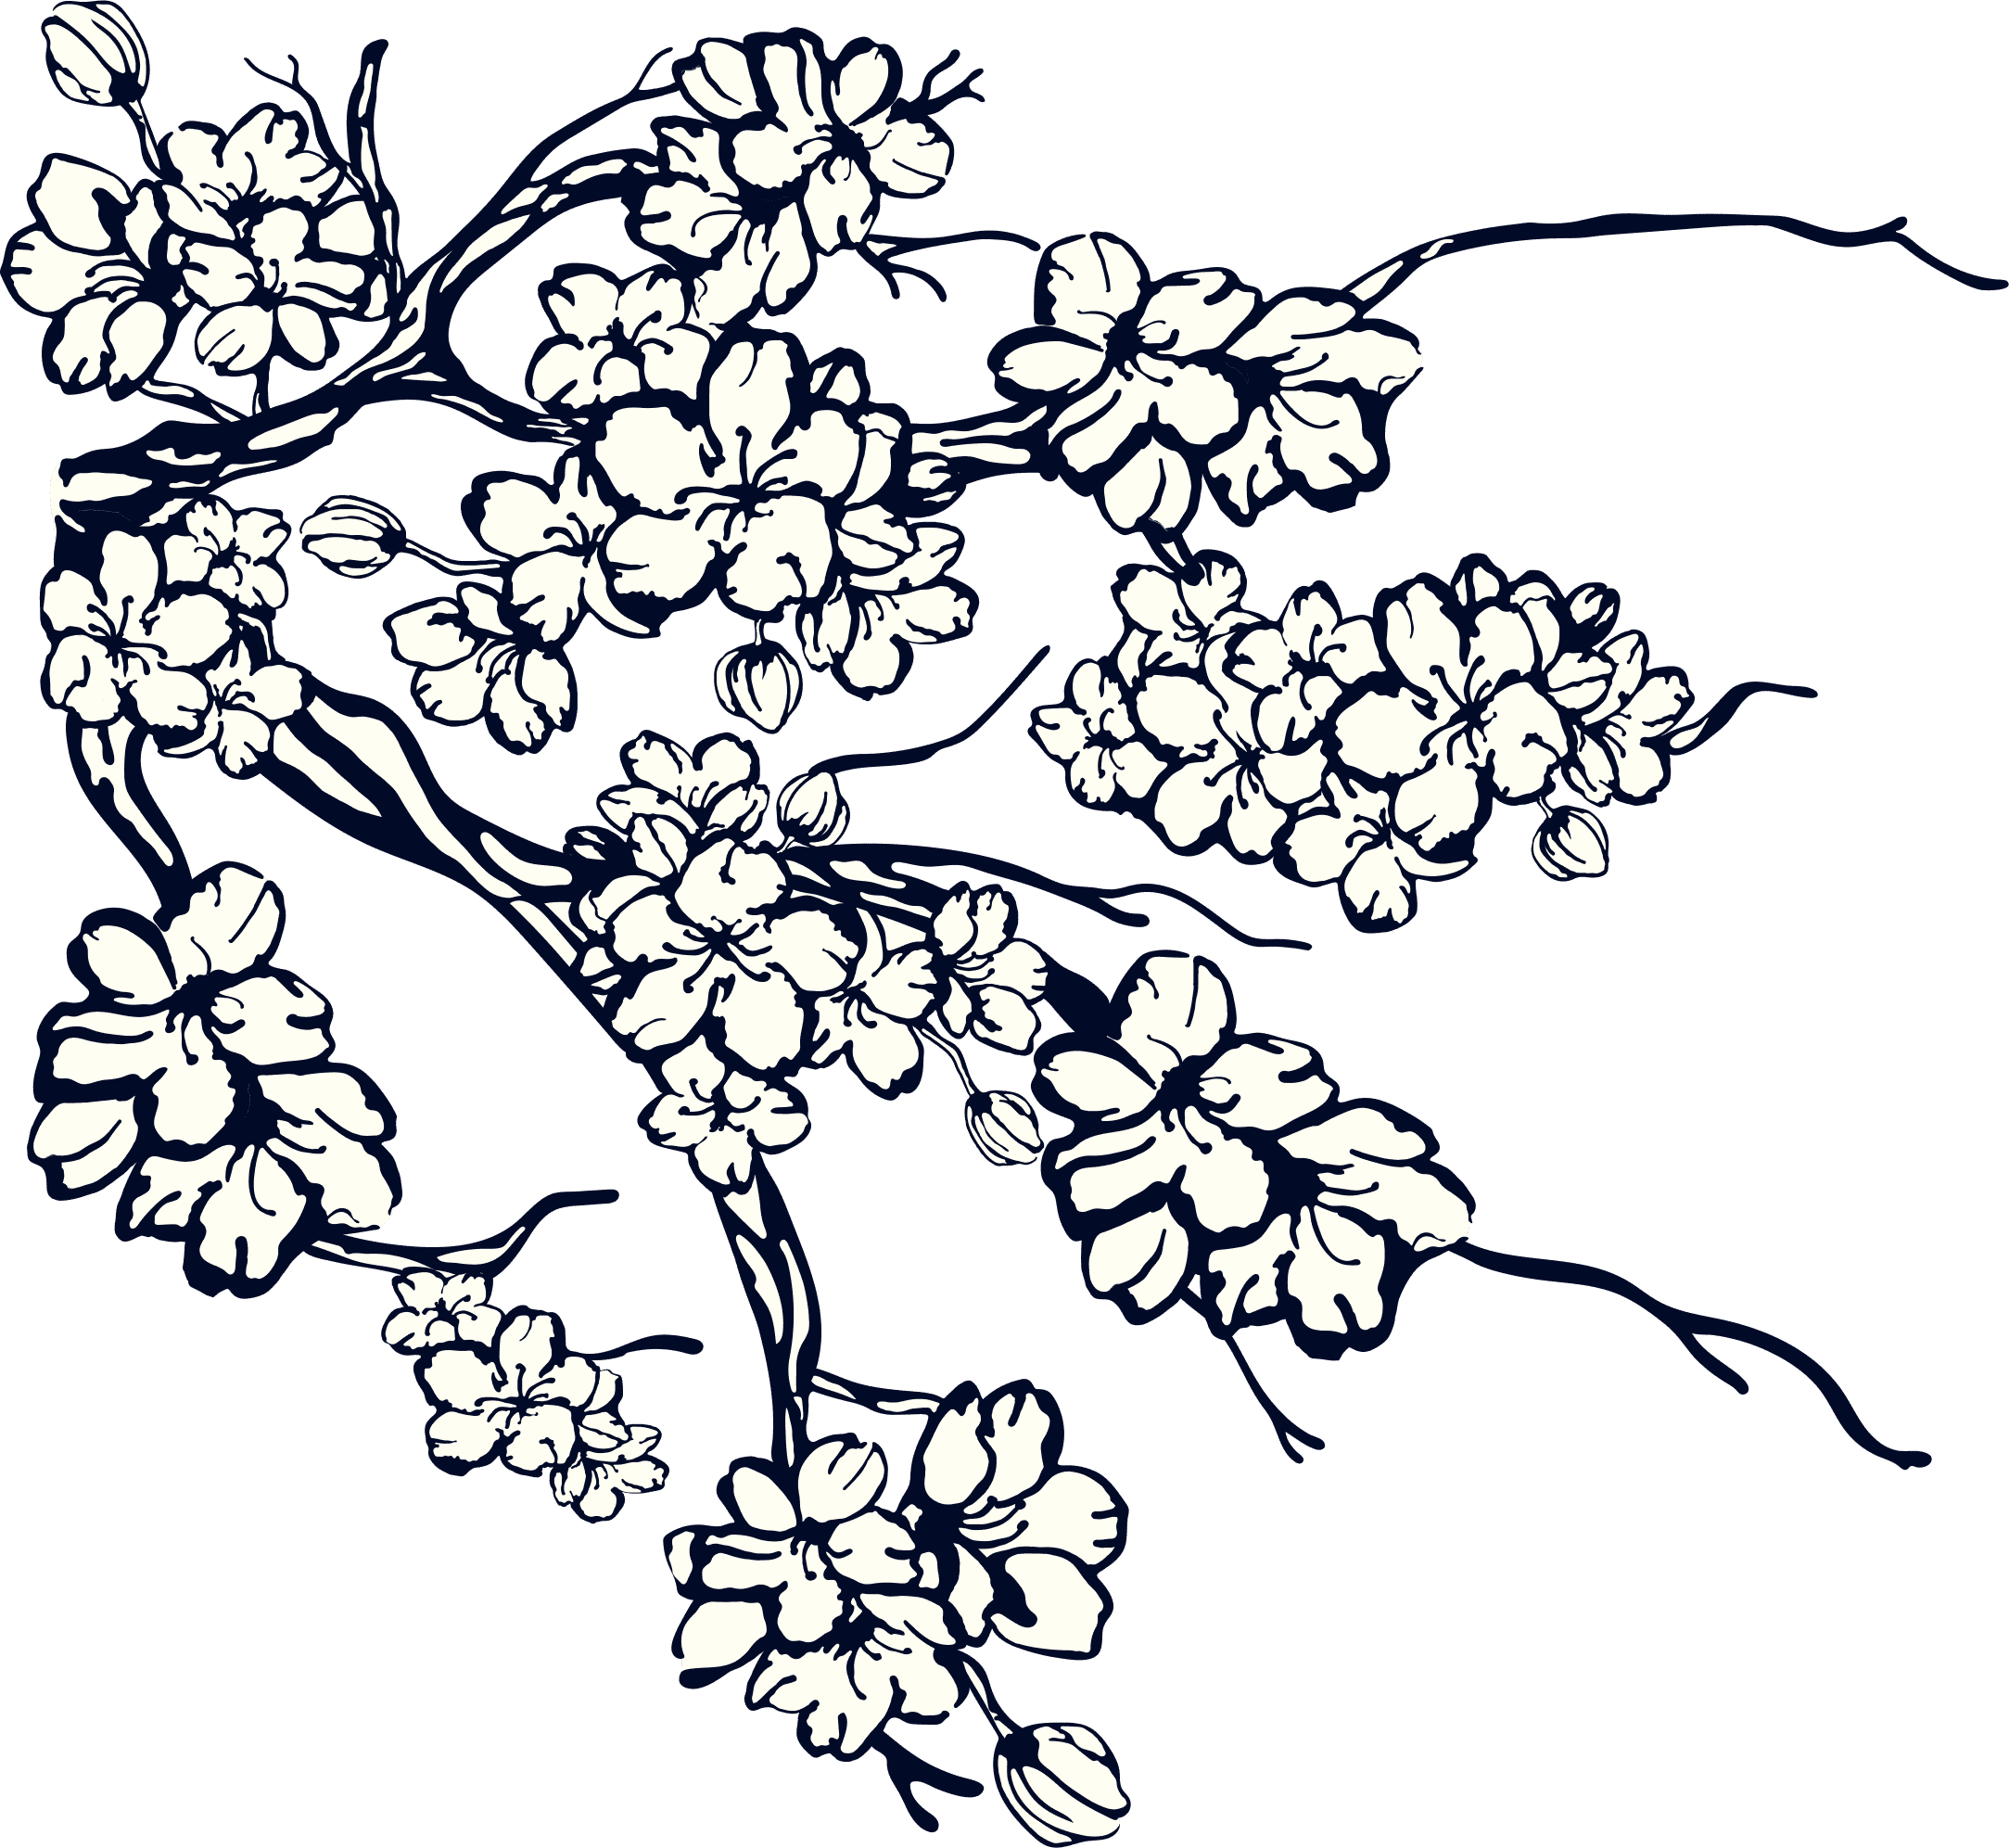 Smaller Stanley's Chelsea lower right illustrated branches with navy blossom